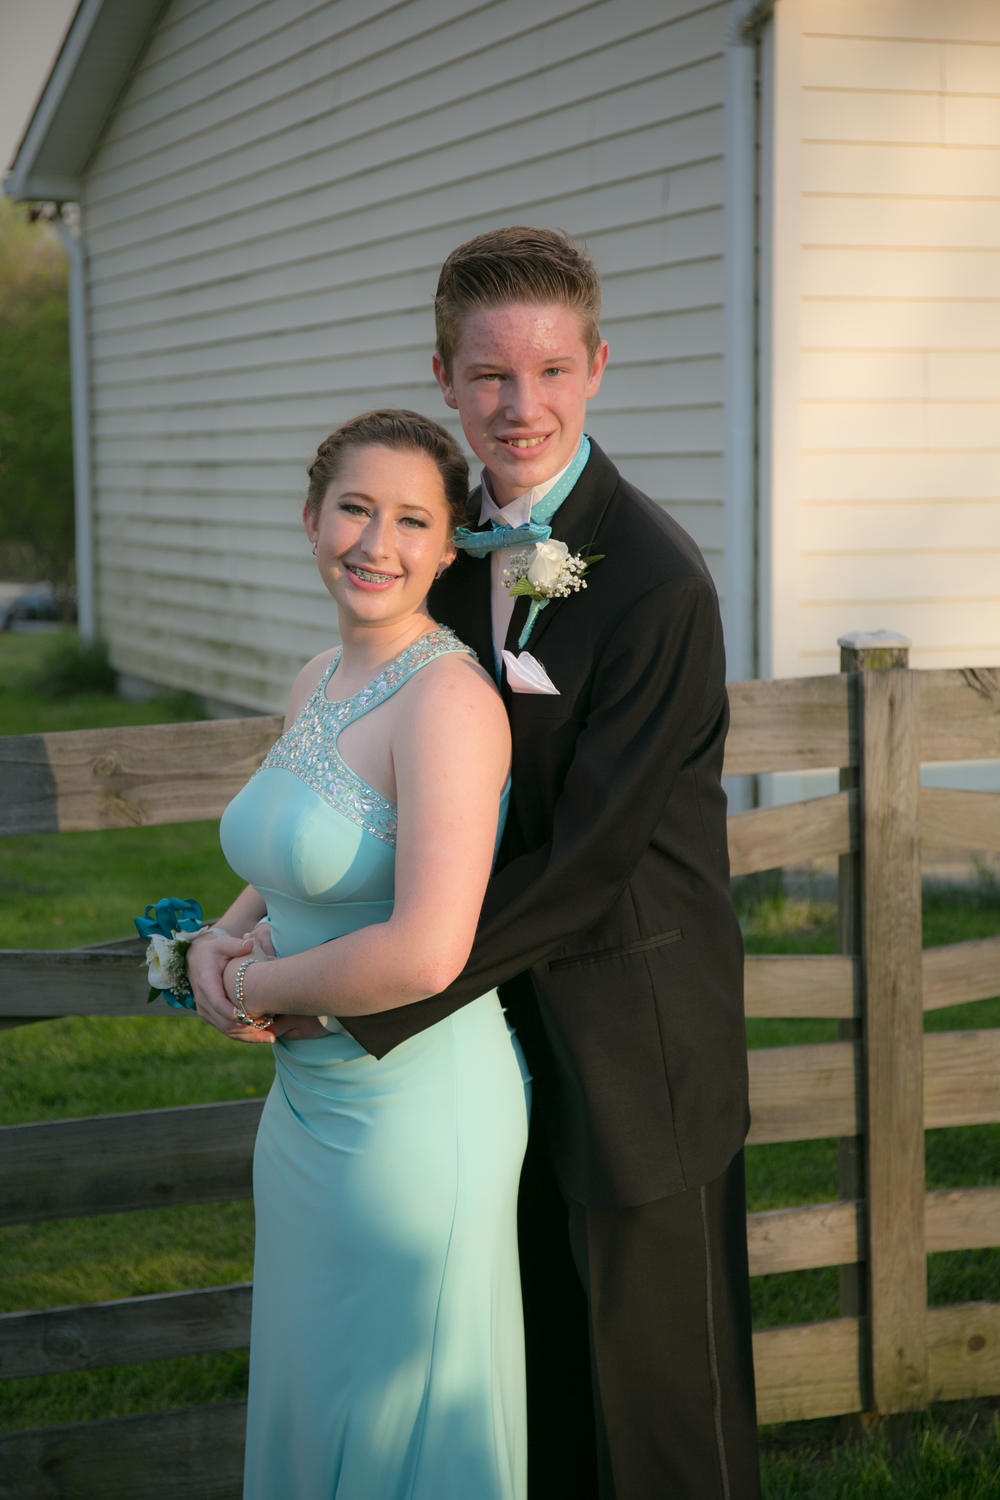 Mount-De-Sales-Pre-Prom-May-2014-73.jpg